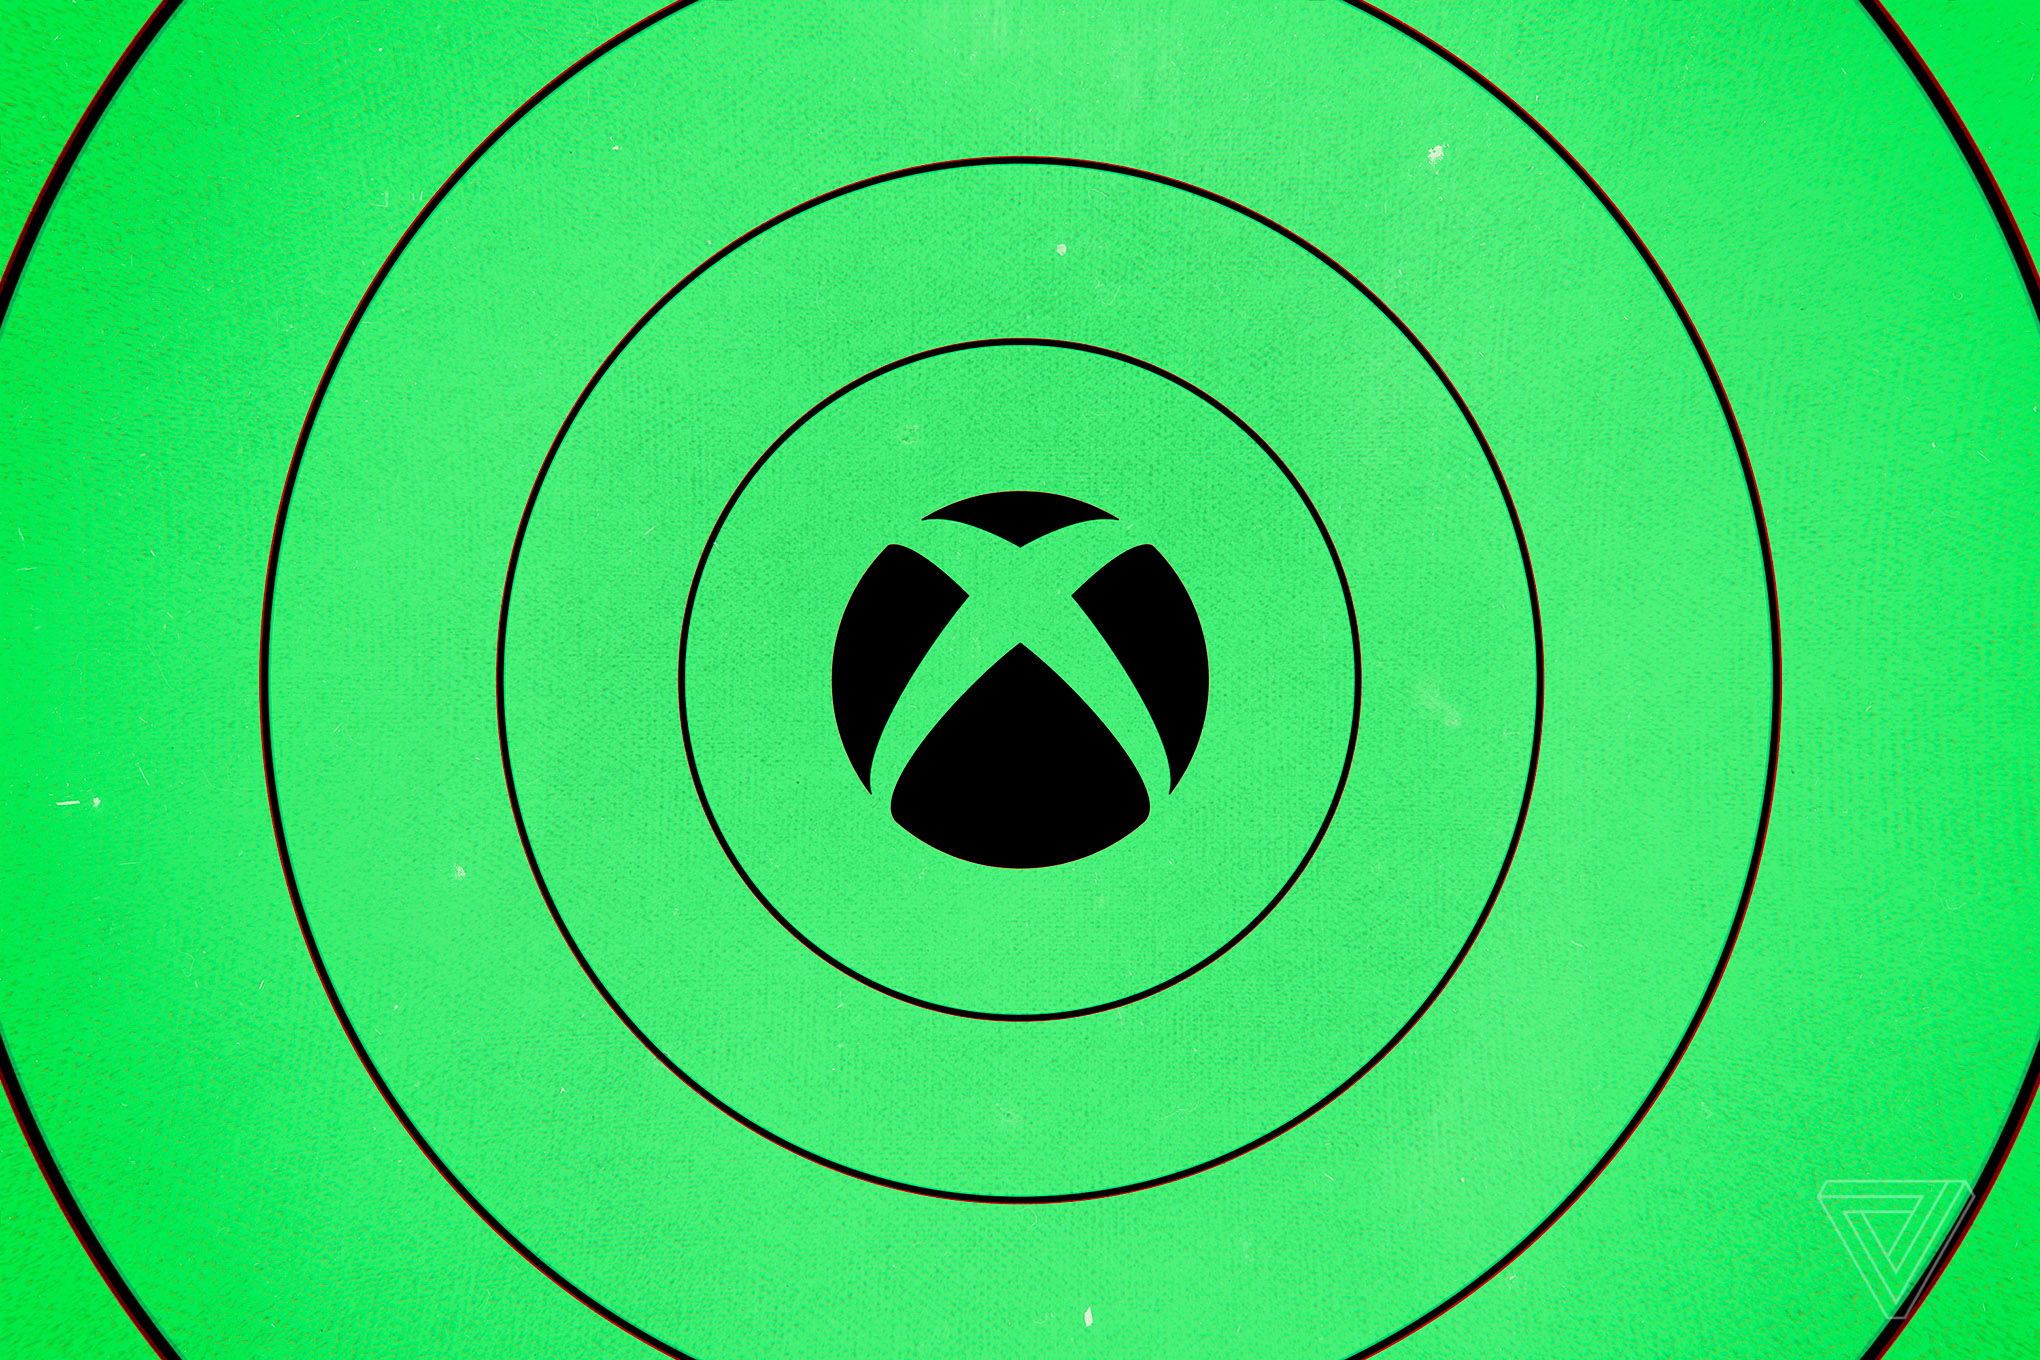 Microsoft now allows Xbox players to pick any gamertag they